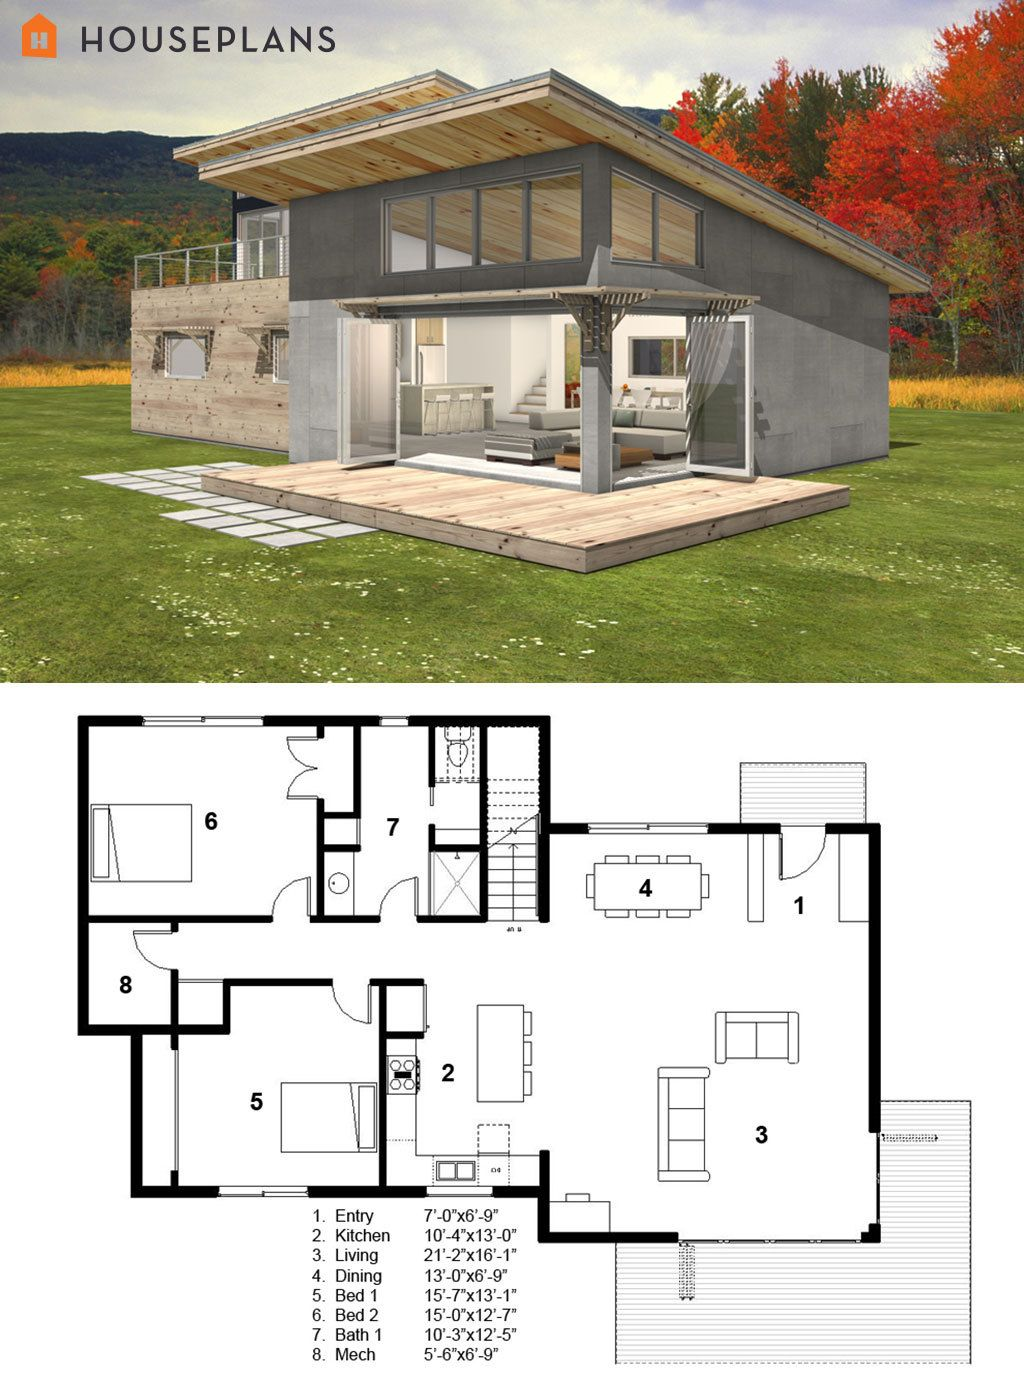 Modern style house plan 3 beds baths 2115 sq ft for Tiny house blueprint maker